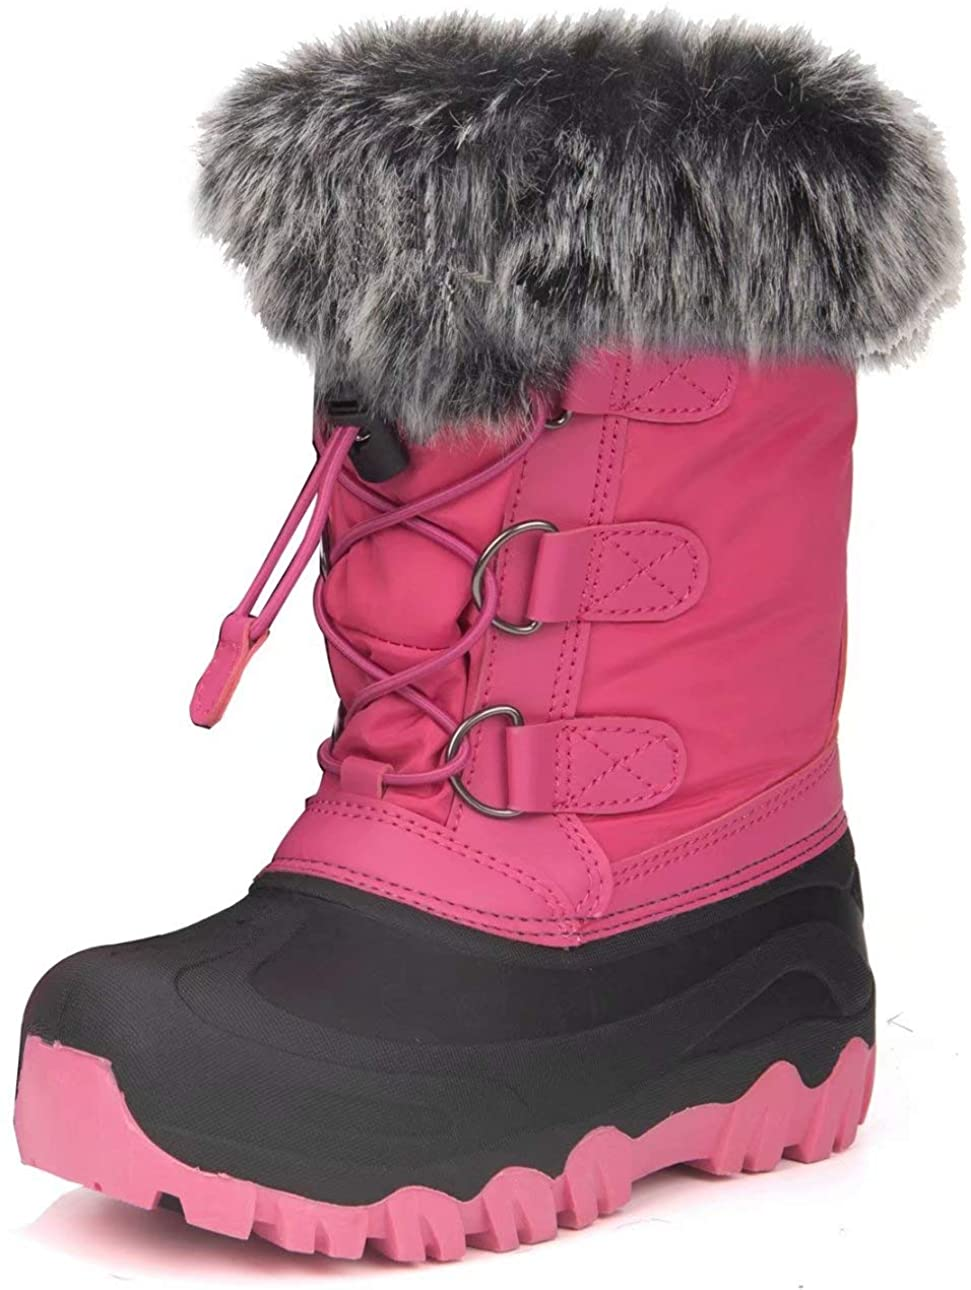 Outee Kids Girls Boys Warm Snow Boots with Faux Fur